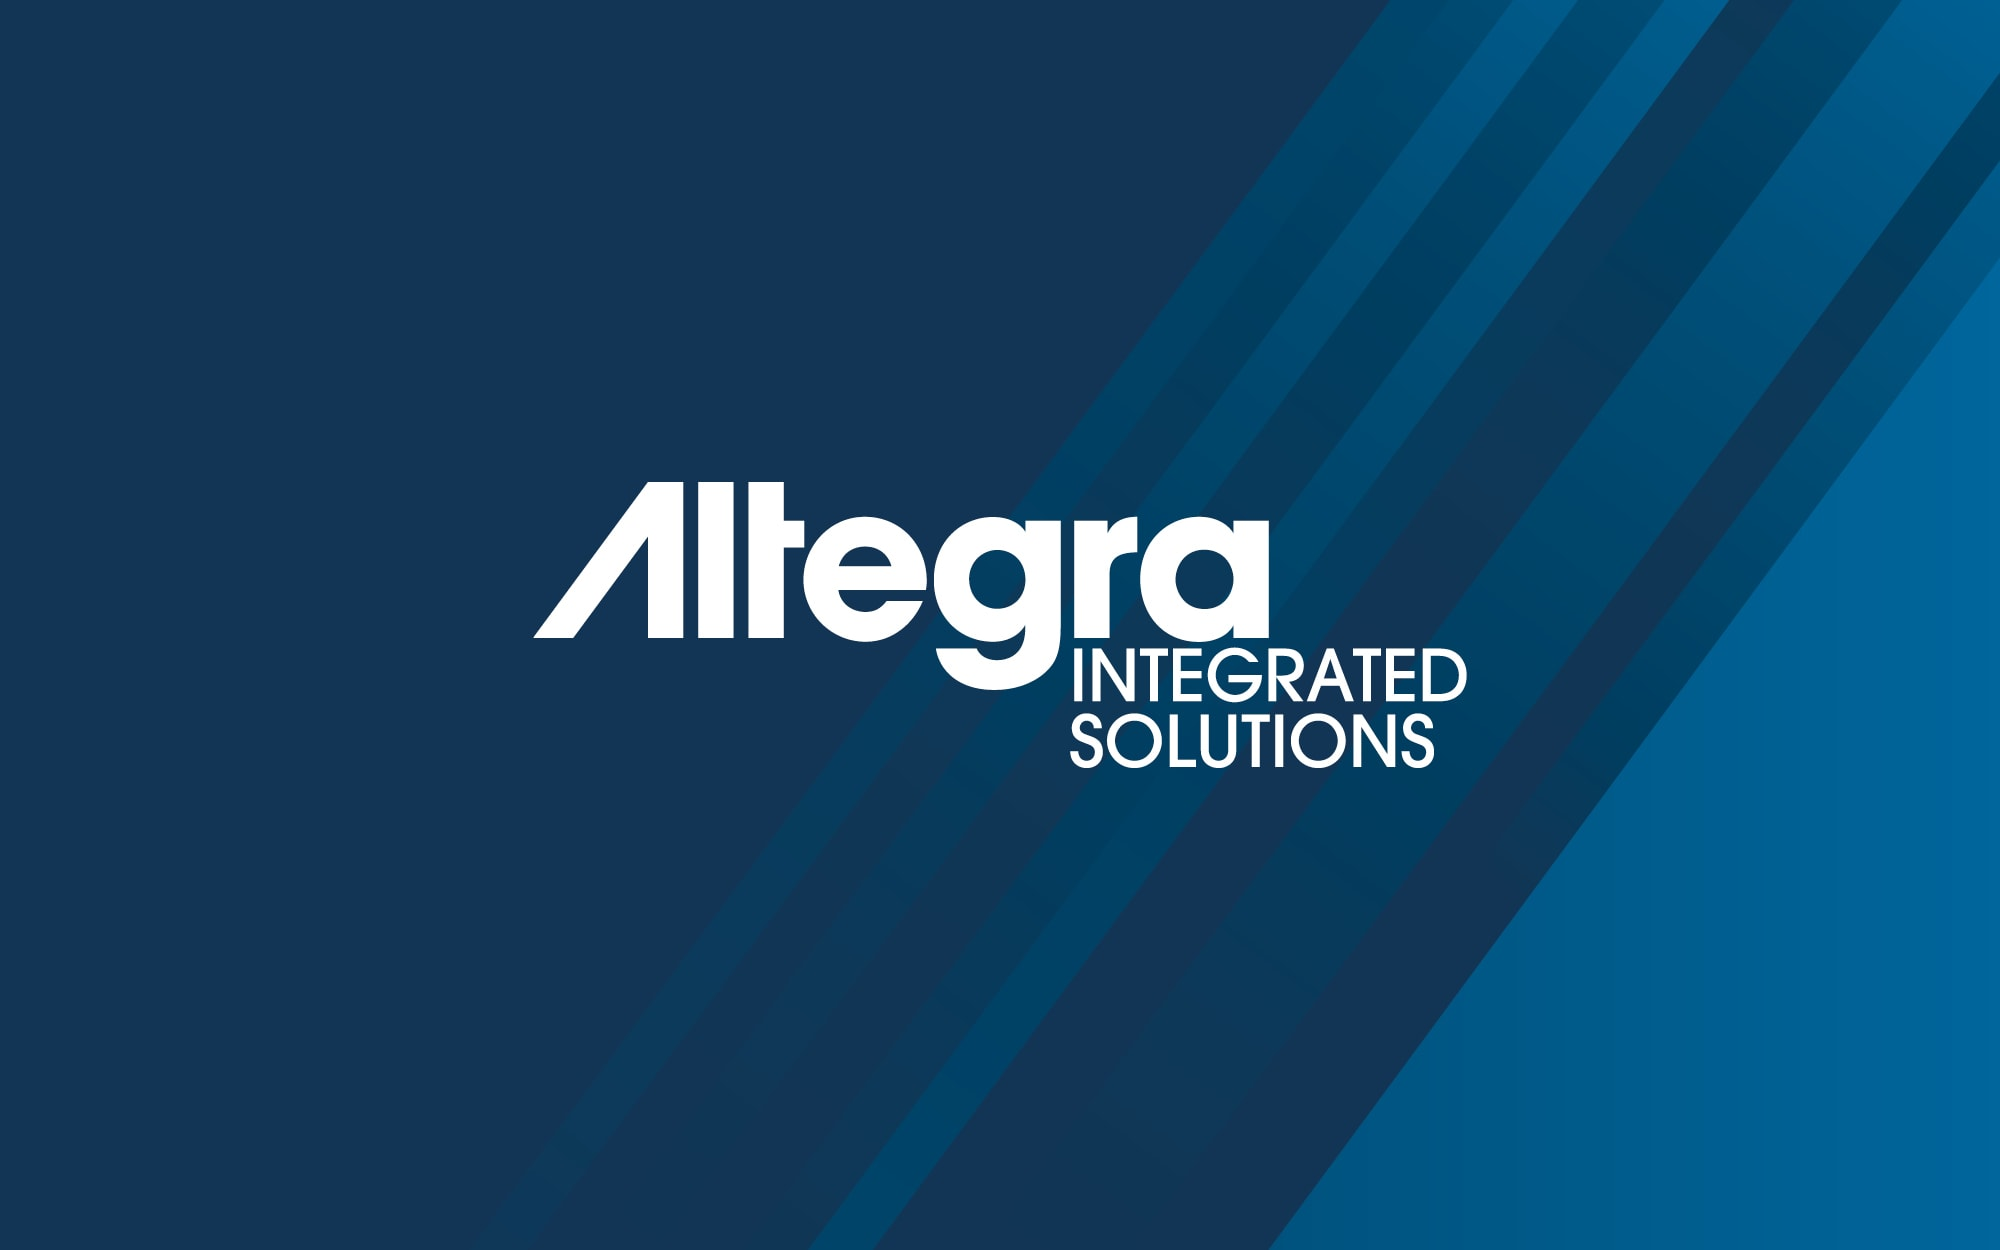 Altegra Integrated Solutions Brand Identity